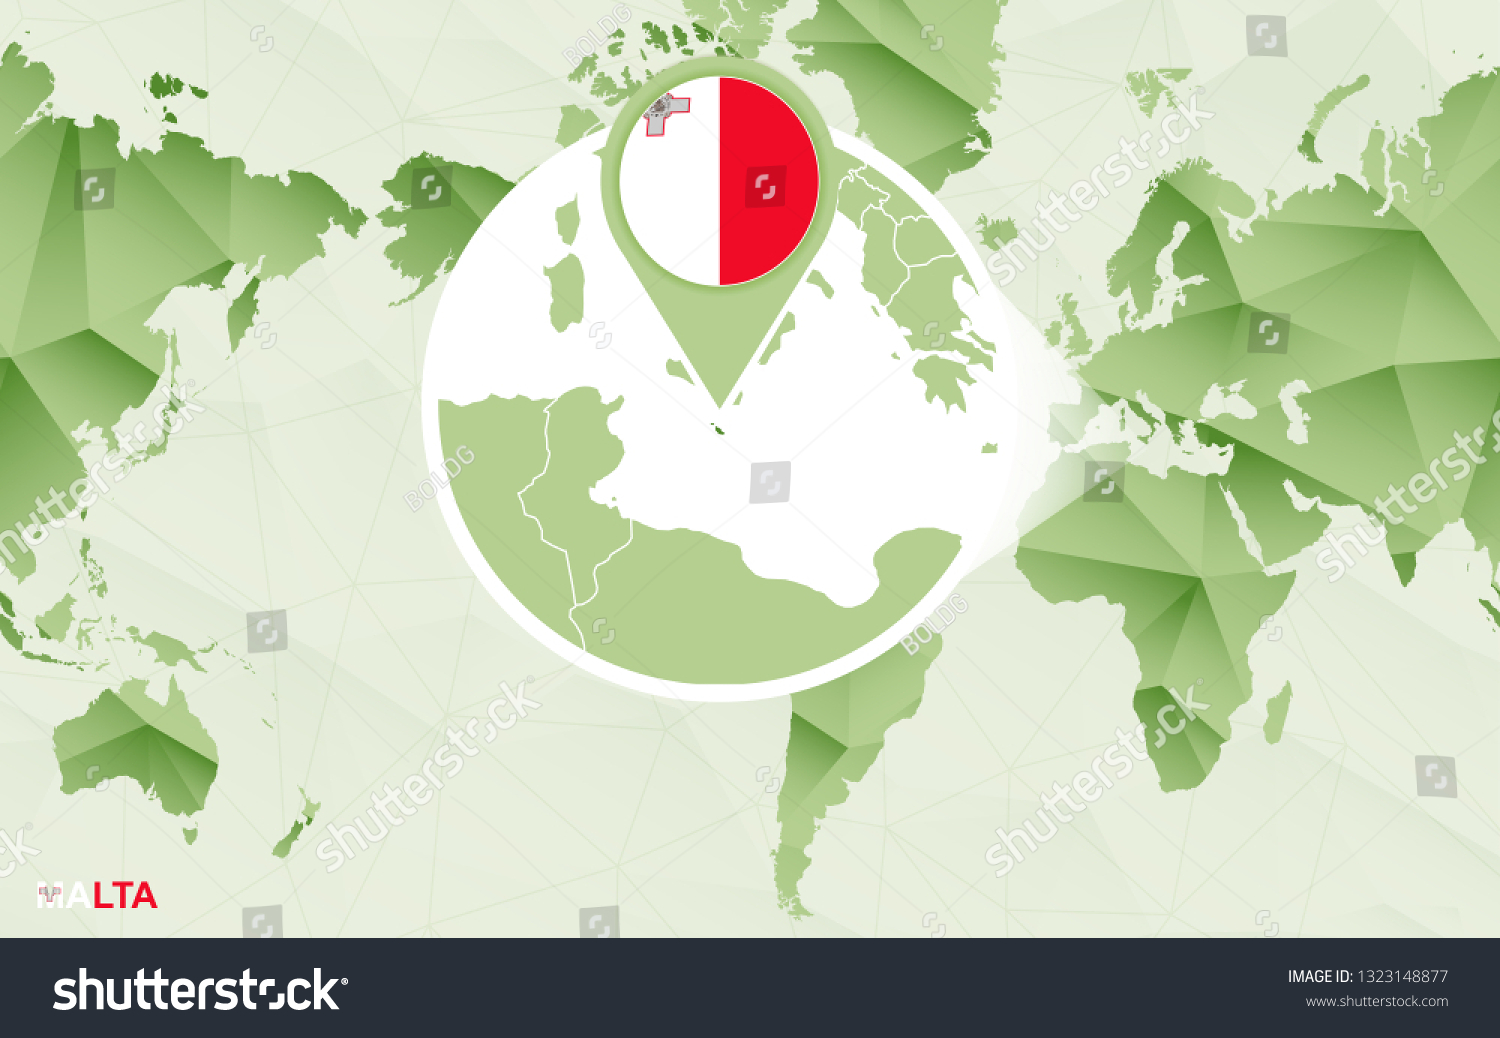 America Centric World Map Magnified Malta   Buildings ...